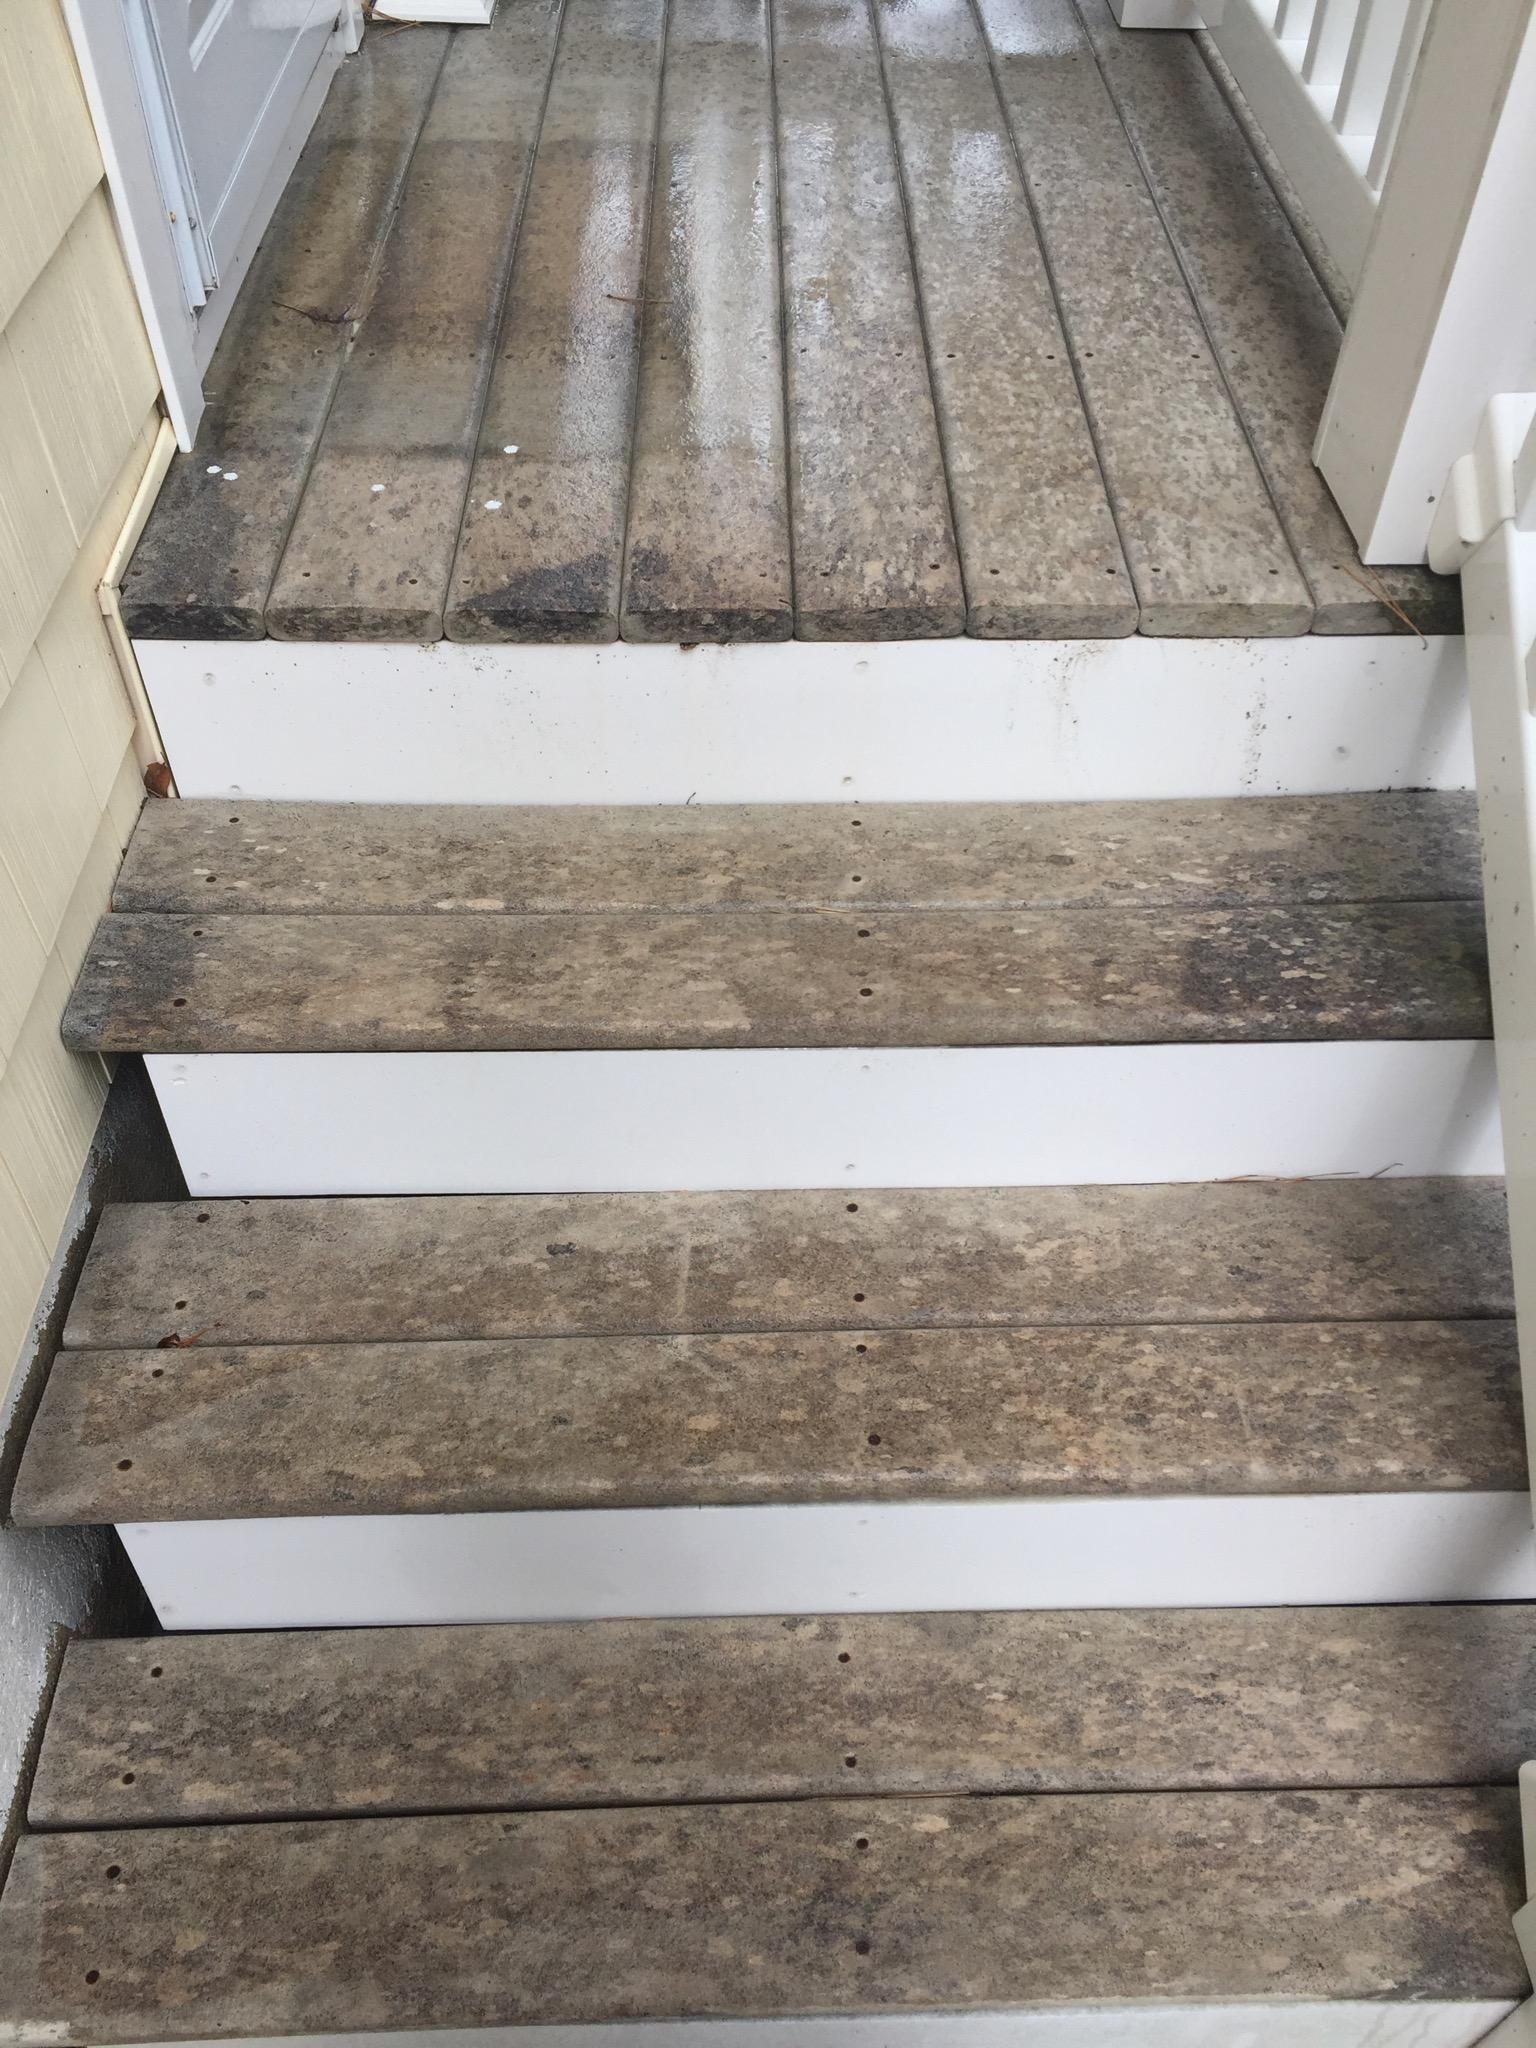 Composite Deck Looks Stained After Washing Stains Surfaces